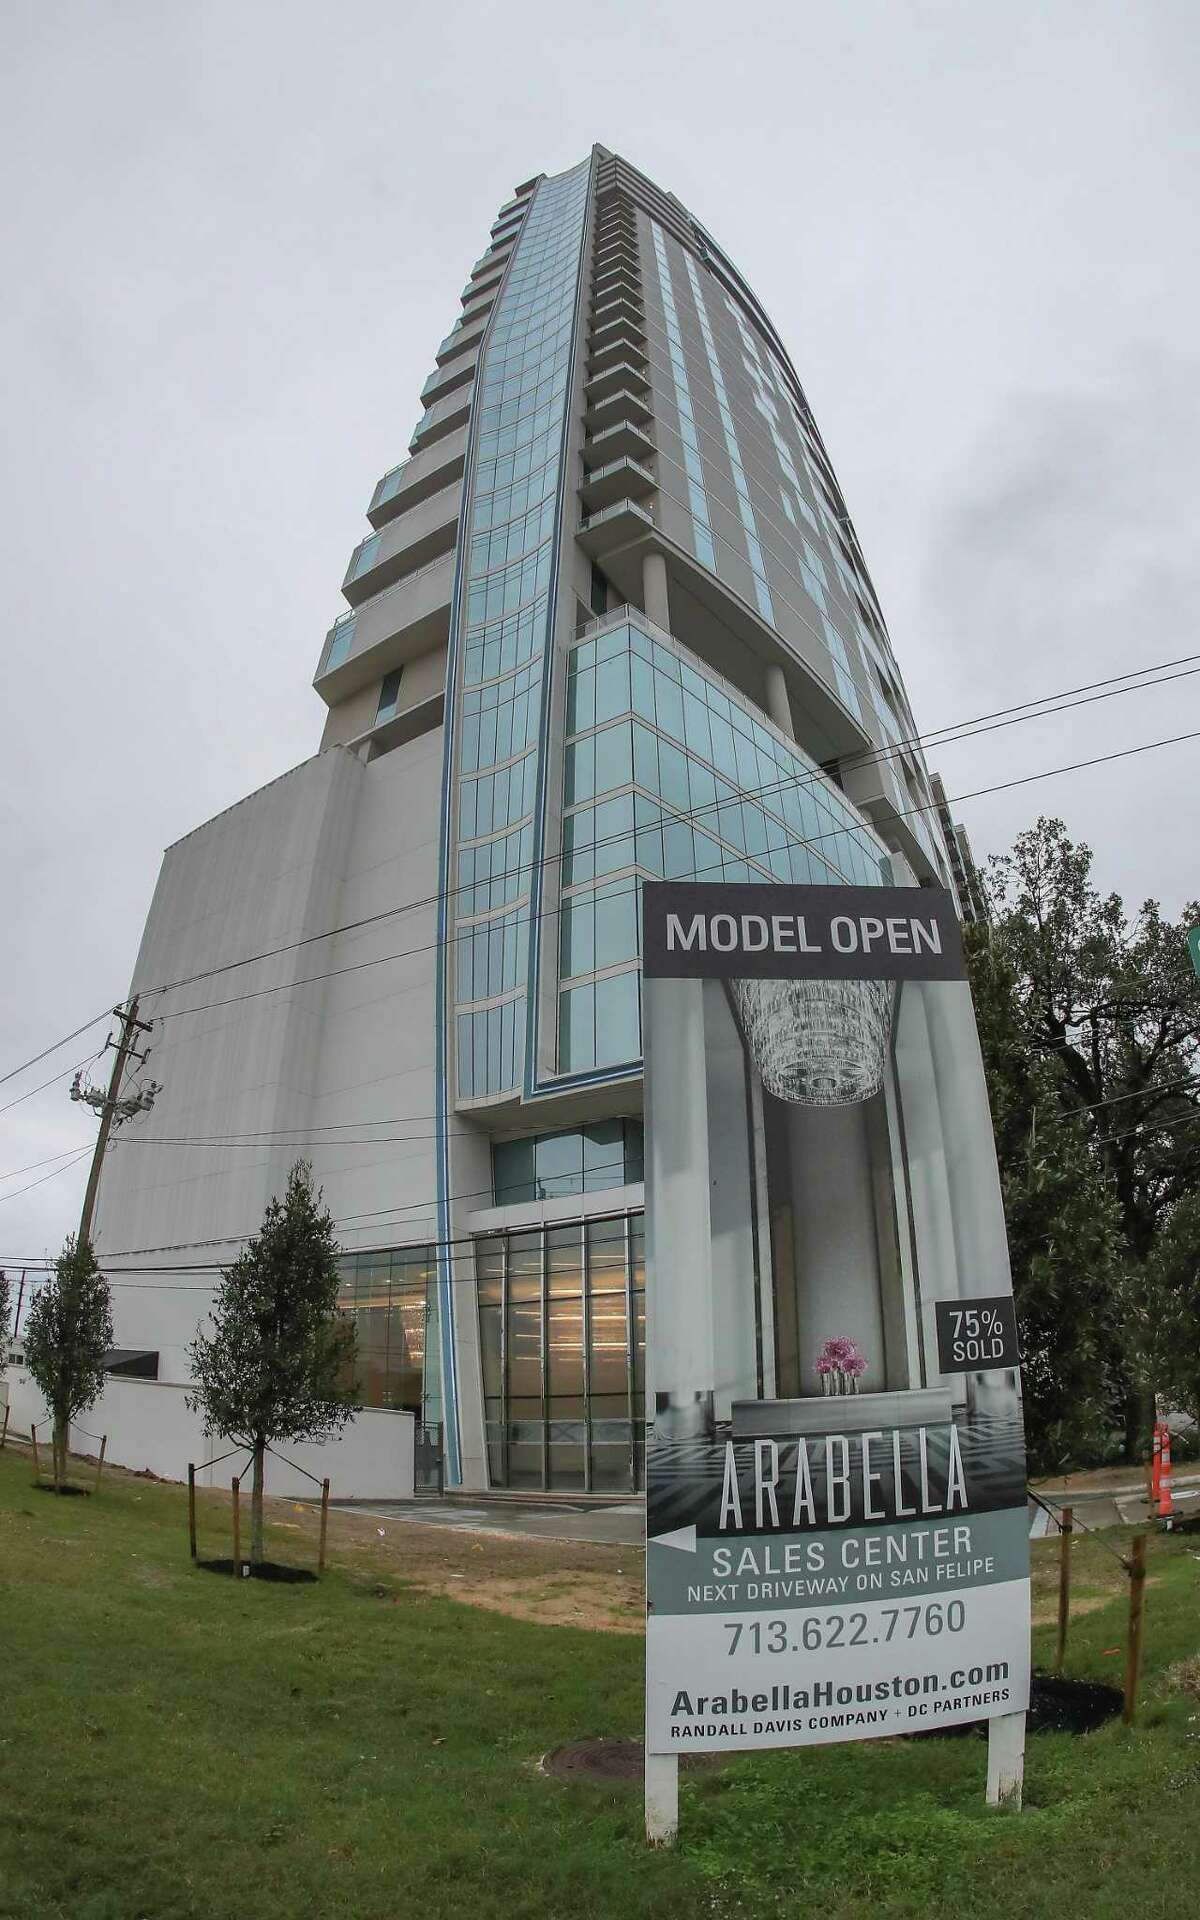 PHOTOS: Attention to details Developer Randall Davis says he spent millions on over-the-top amenities in Arabella, his luxury high-rise opening this week in the Galleria area. >>>See some of the most extravagant features ...